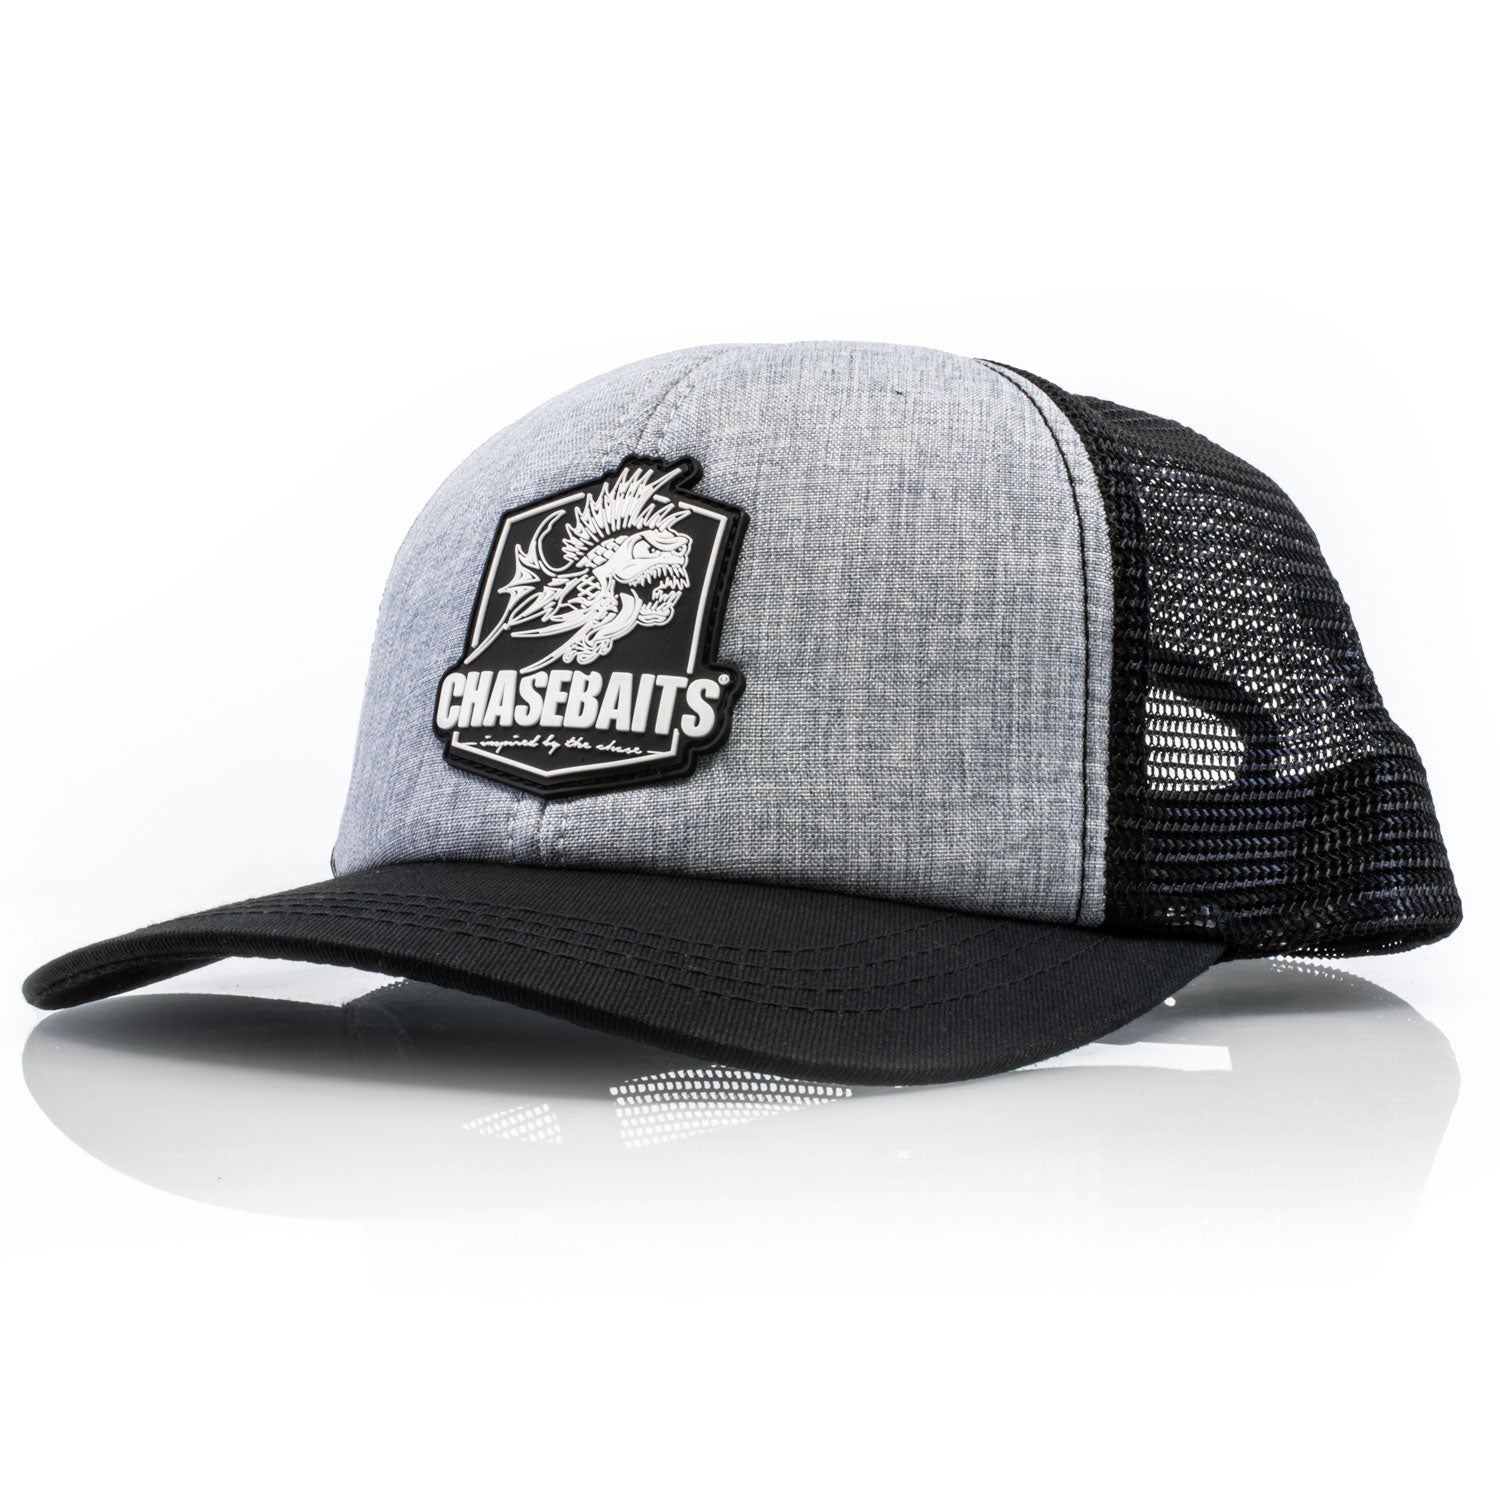 "Chasebaits ""Badge"" Hat"